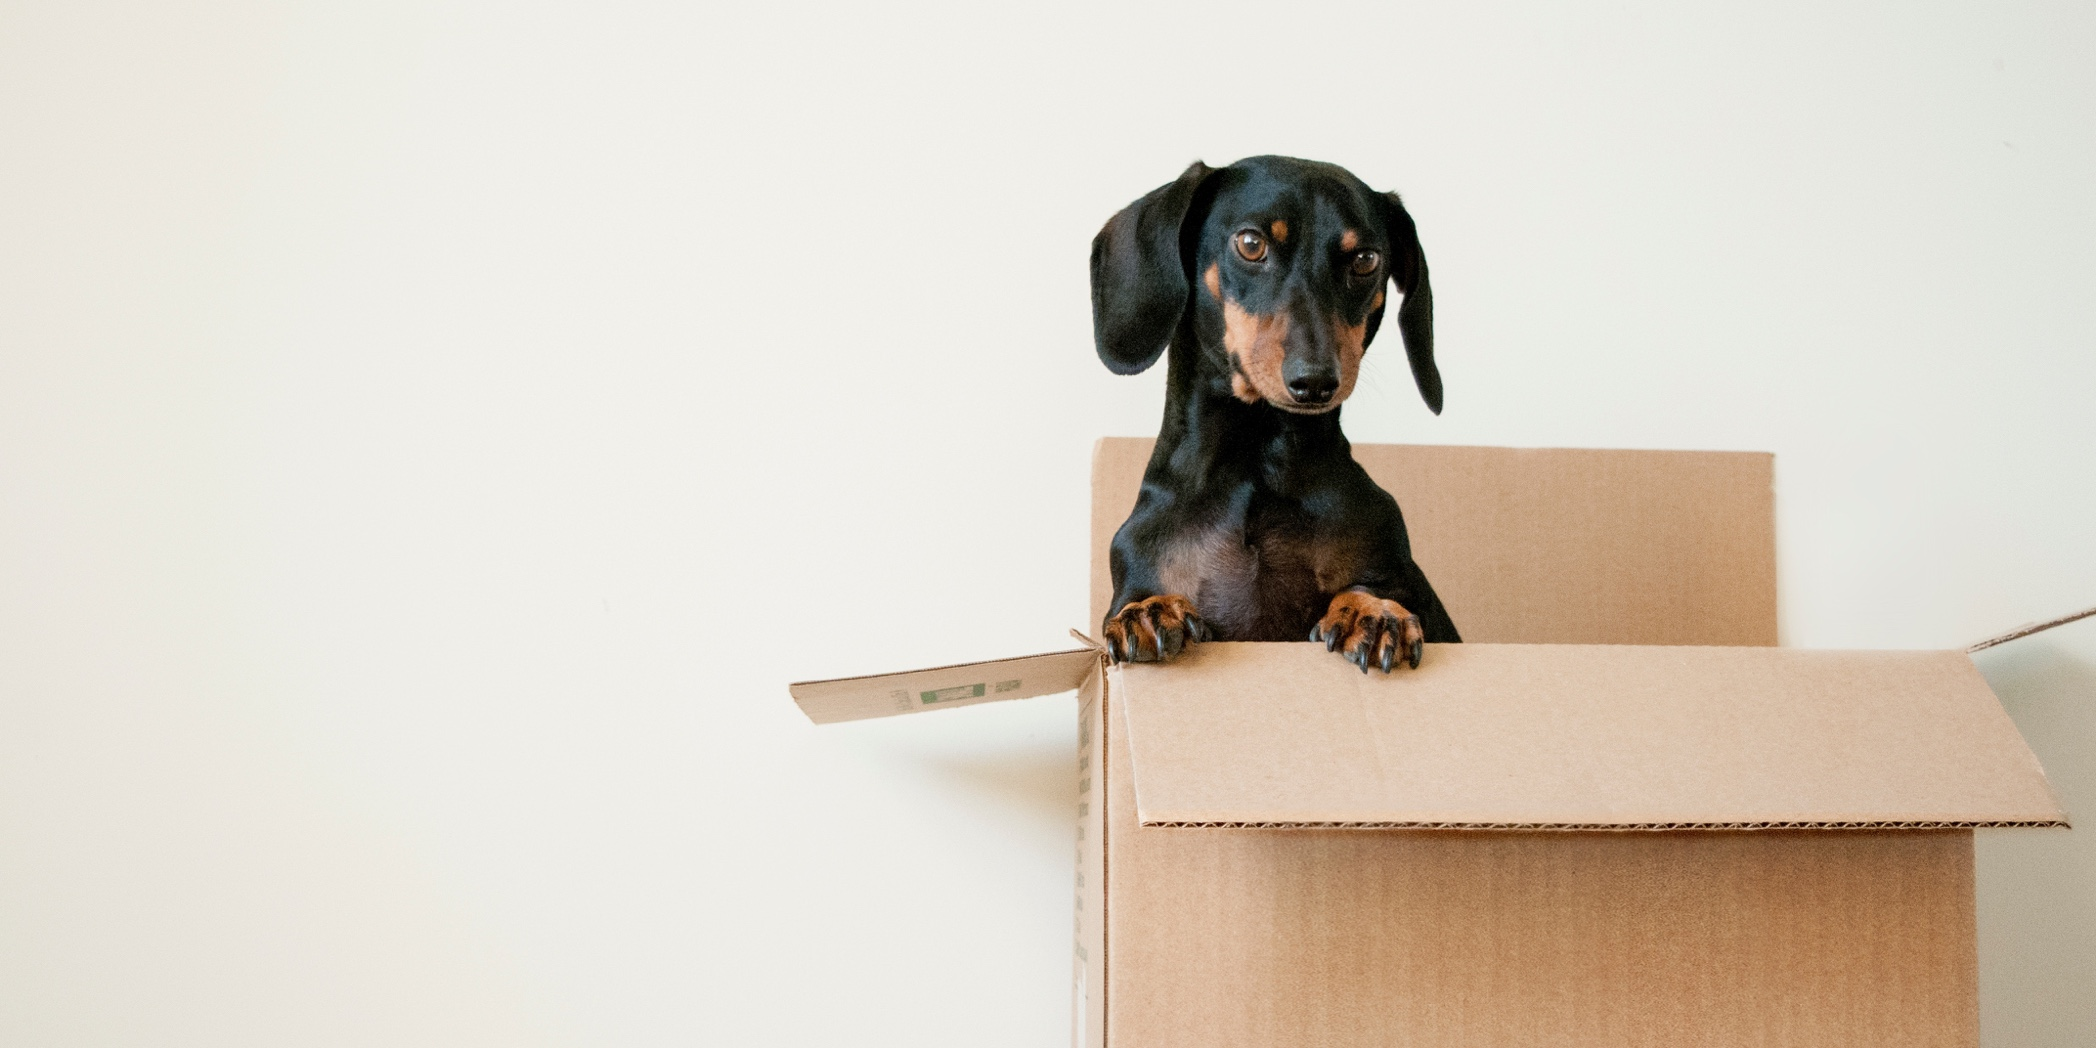 Out of the Box vs. custom software solutions picture of puppy in a box